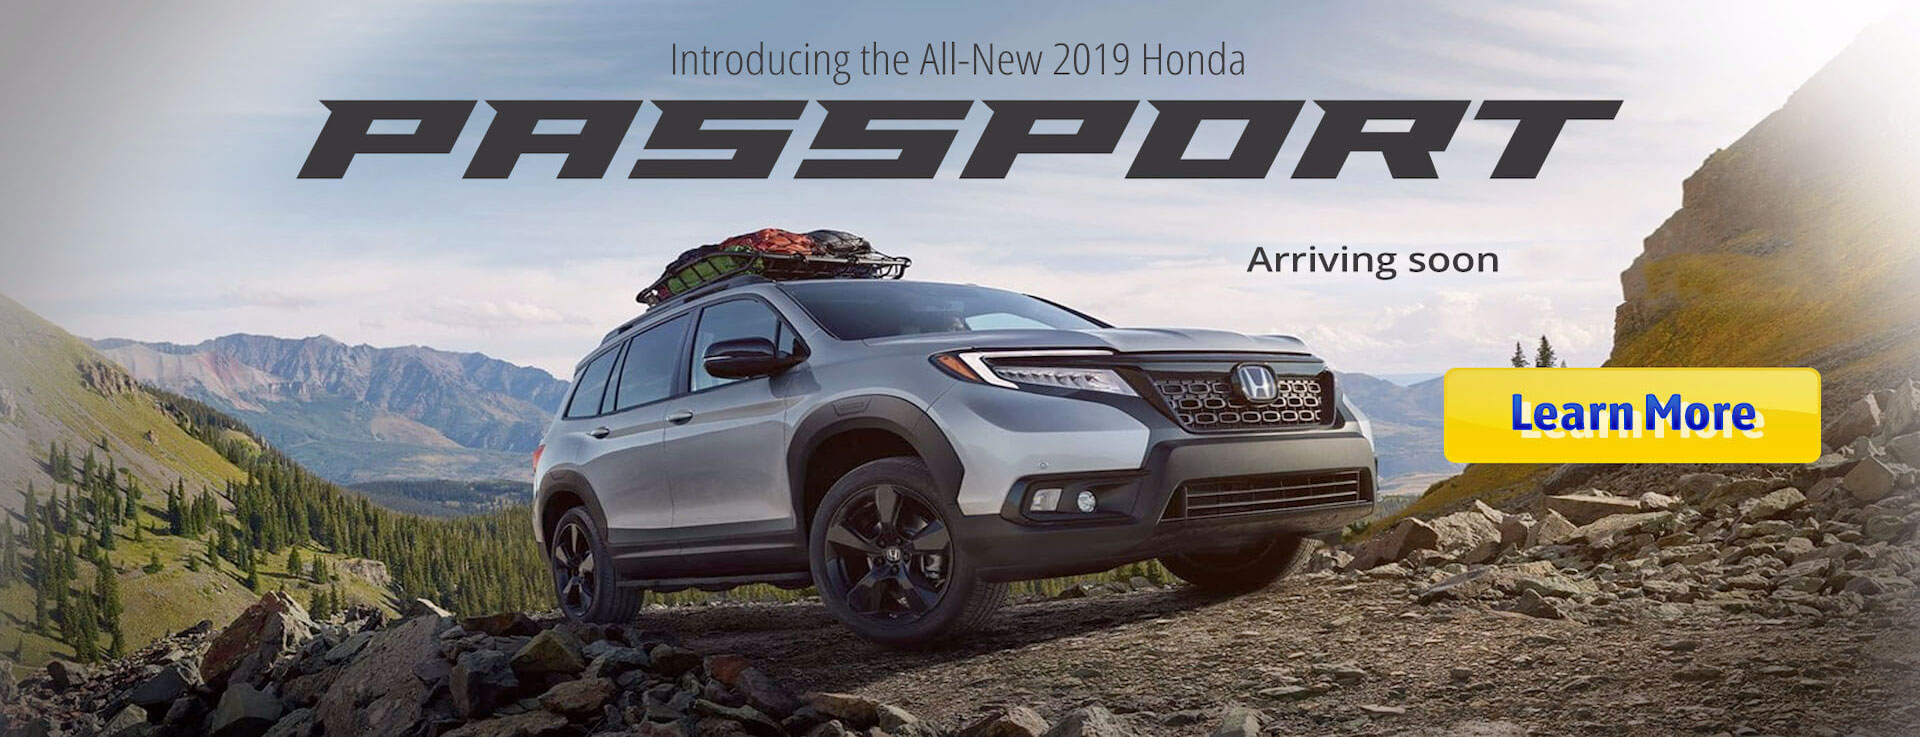 Honda Passport Evergreen